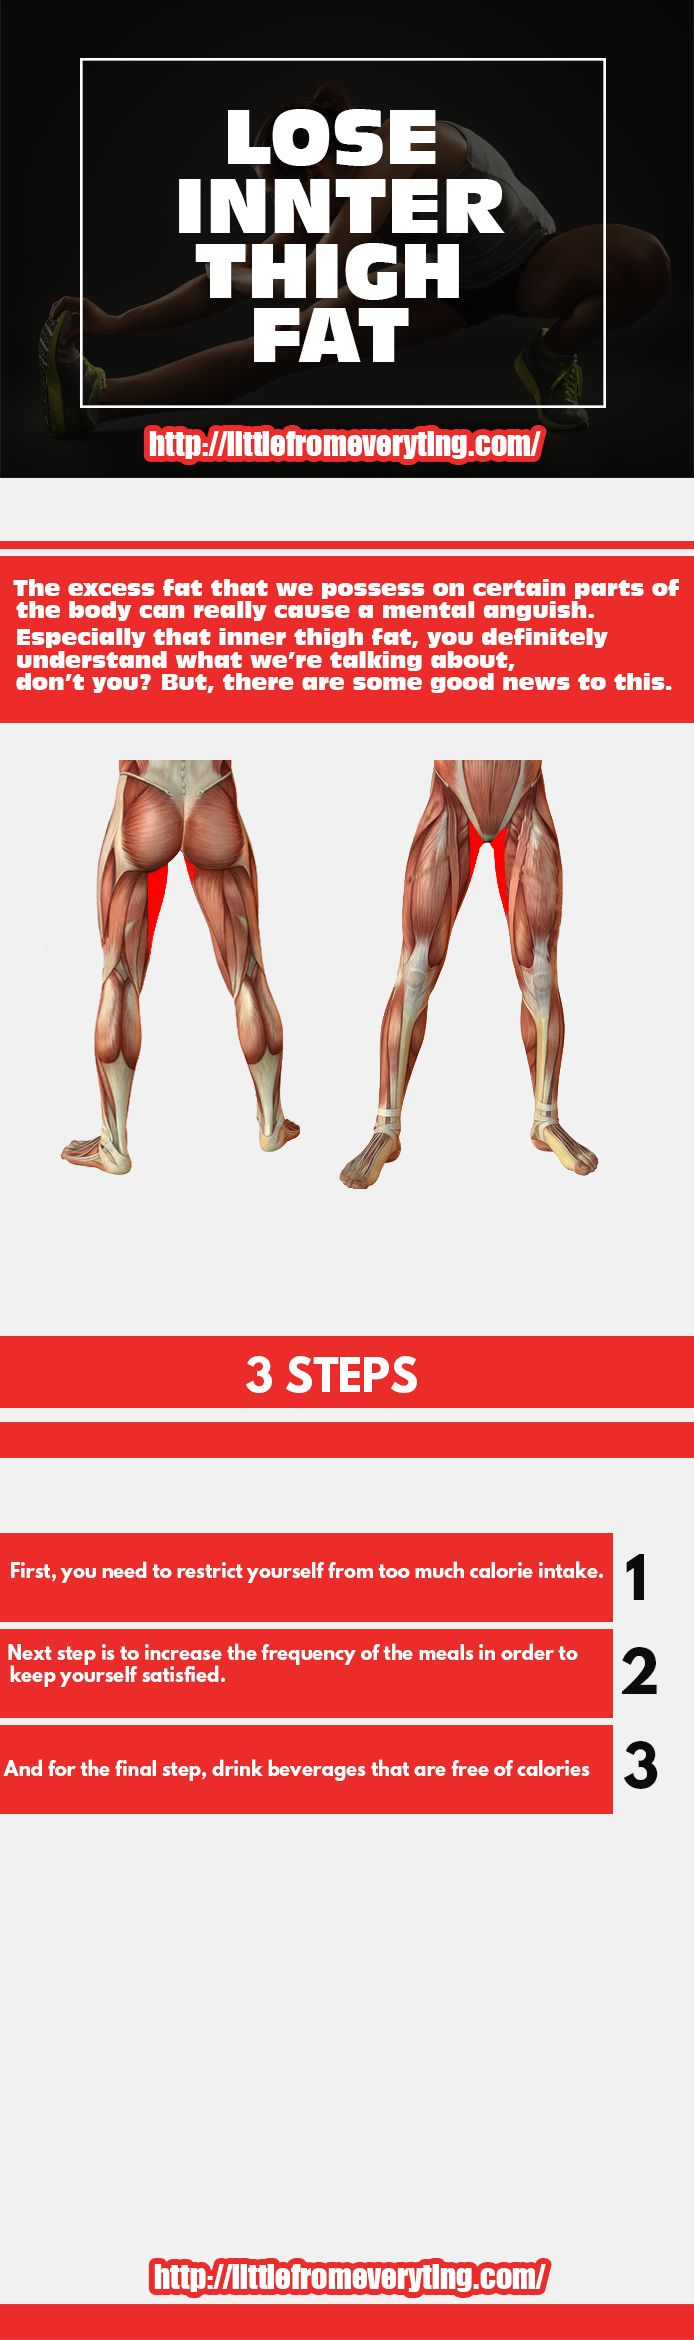 Lose inner thigh fat!!